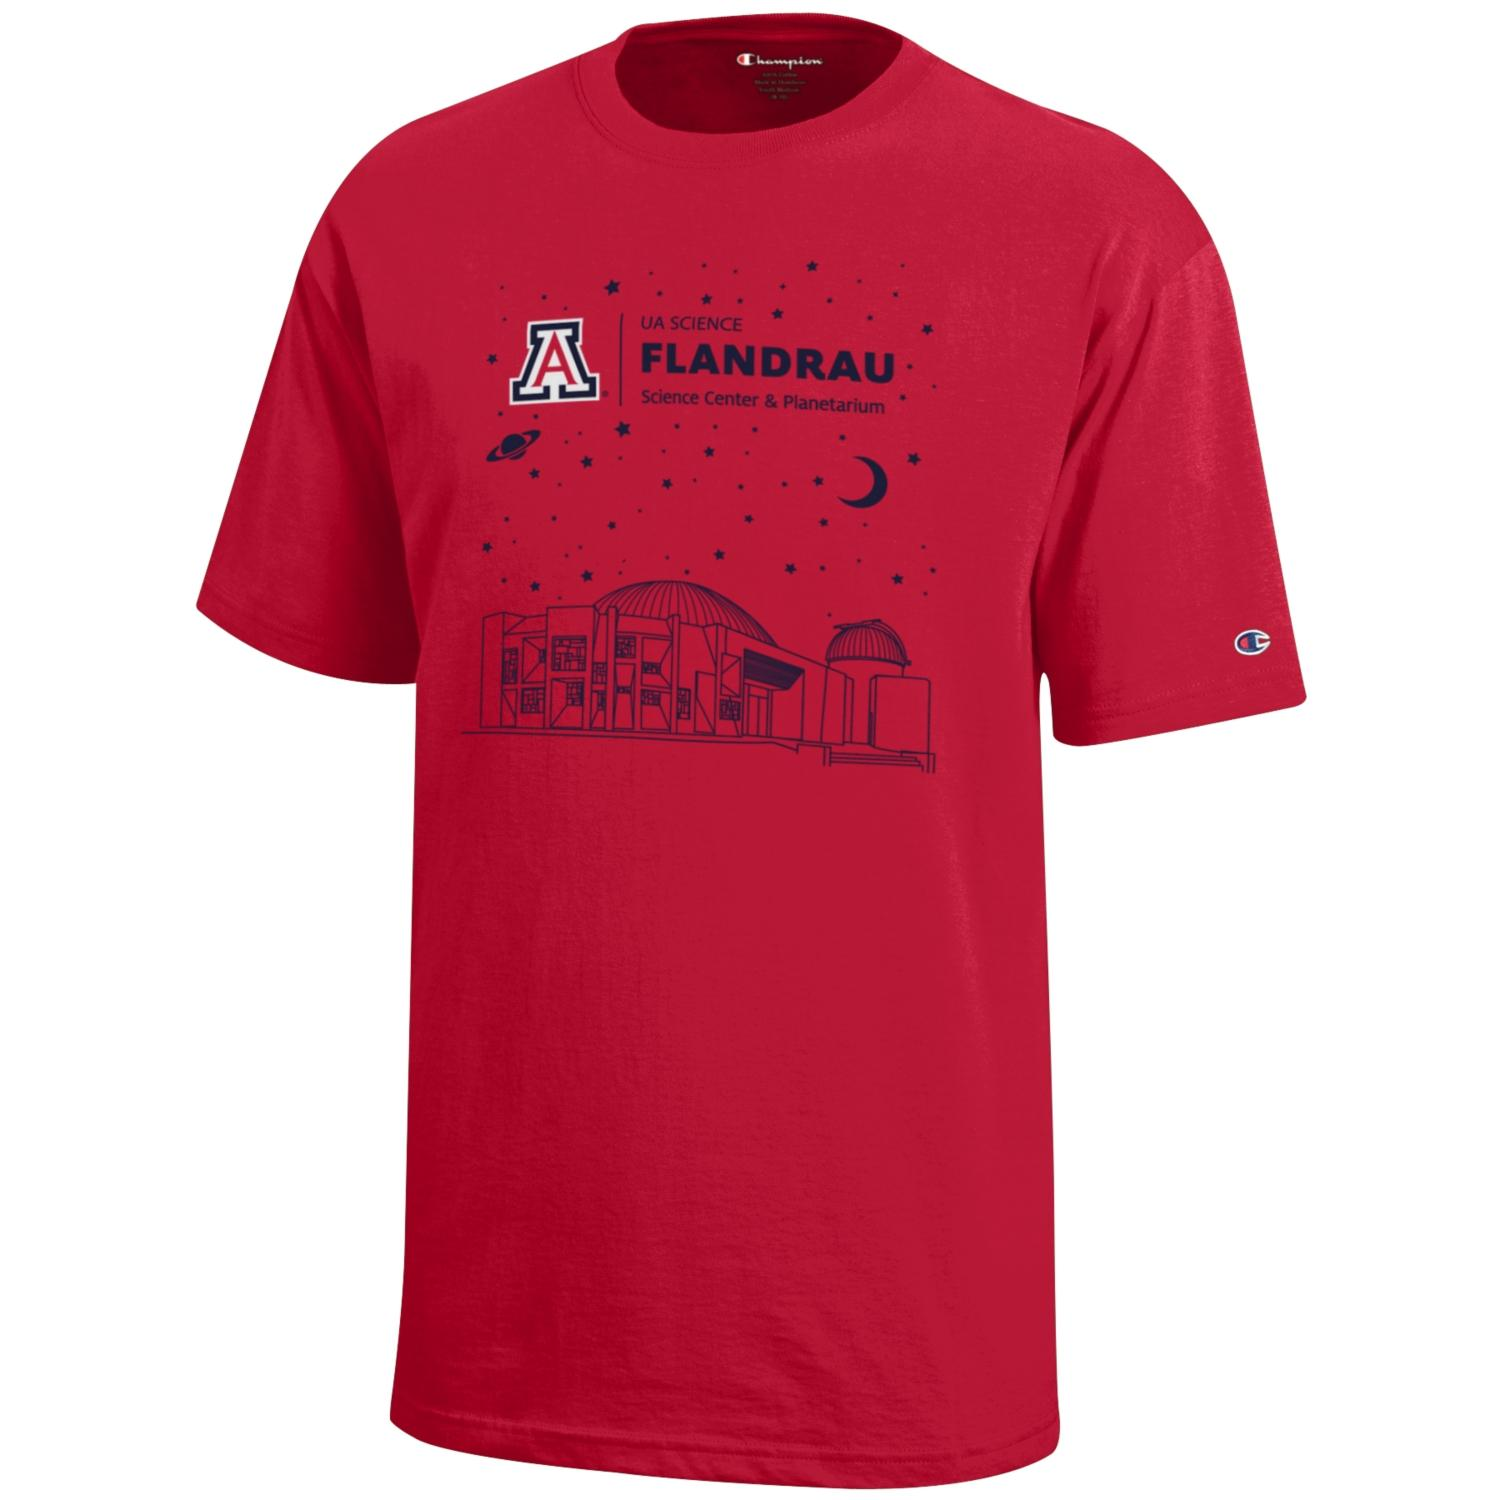 Image For Arizona FLANDRAU Science Center & Planetarium Youth Red Tee